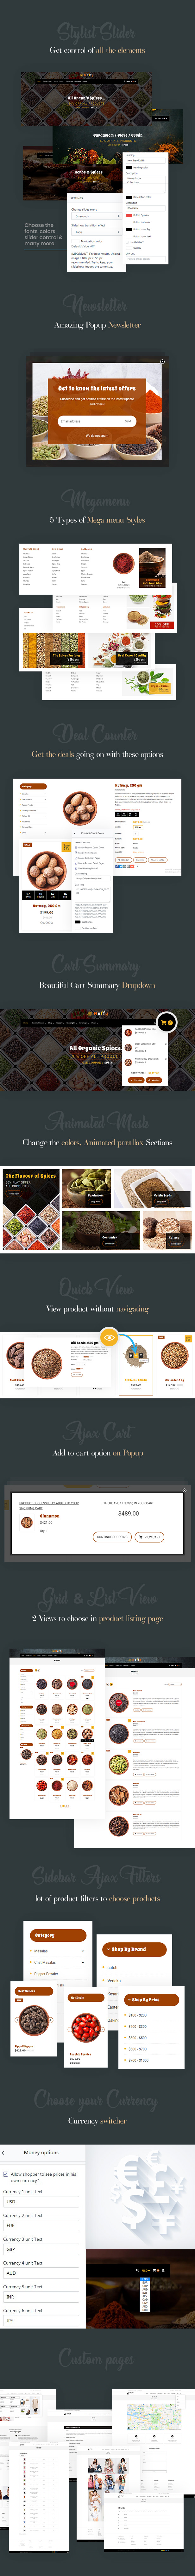 Waffy | Spices, Dry Fruits Shopify Theme - 3